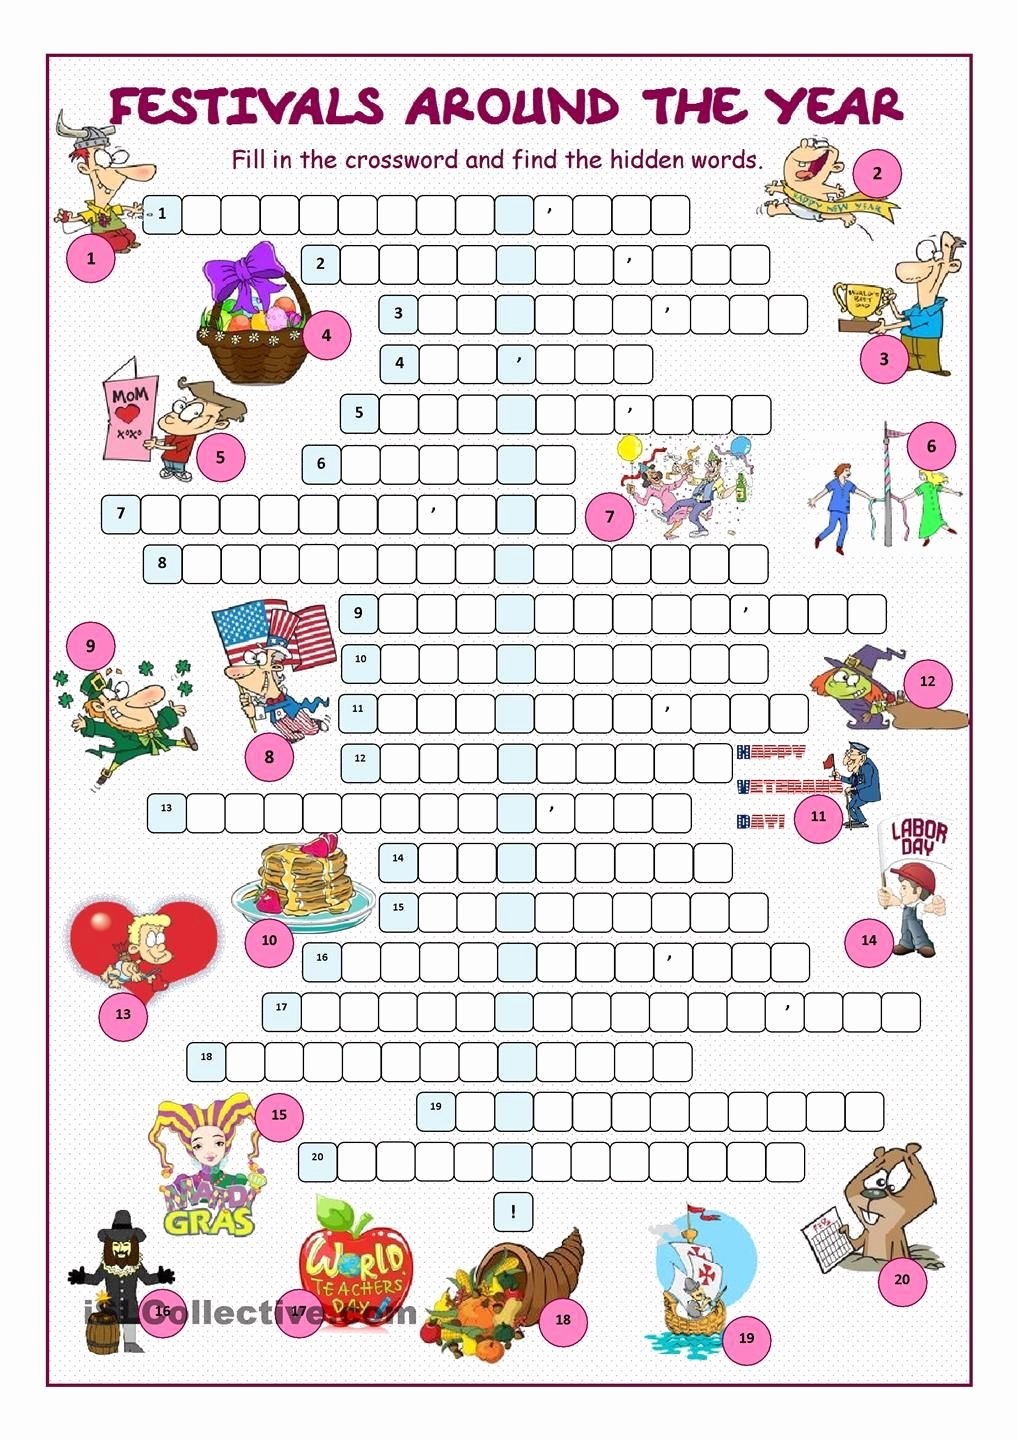 Festival Worksheets for Preschoolers Inspirational Festivals Around the Year Crossword Puzzle